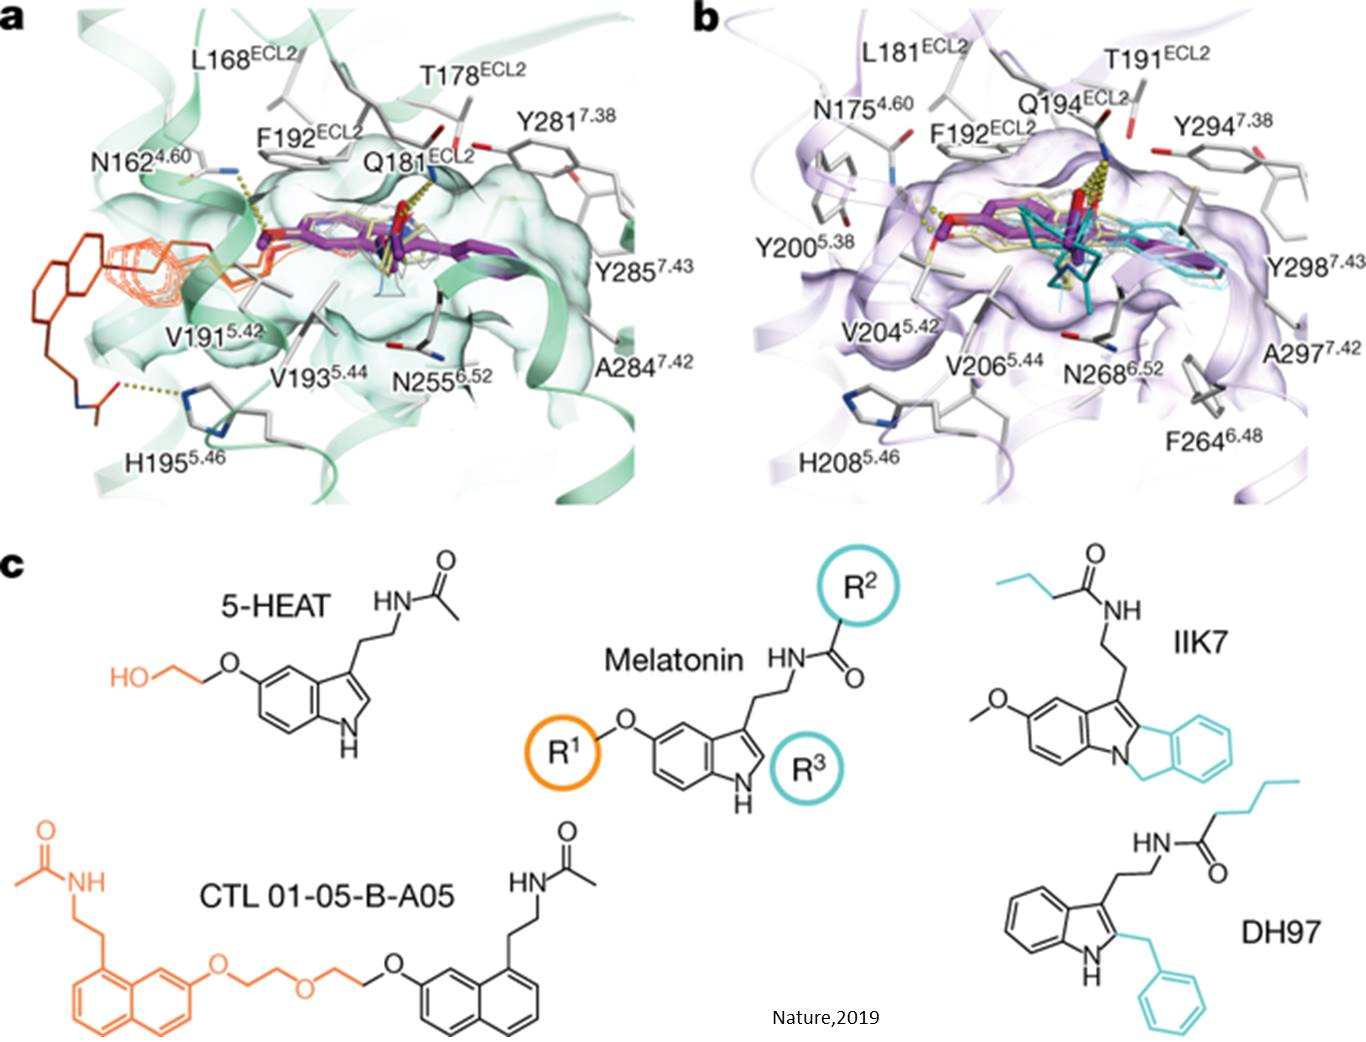 Structure of melatonin receptors involved in sleep solved!